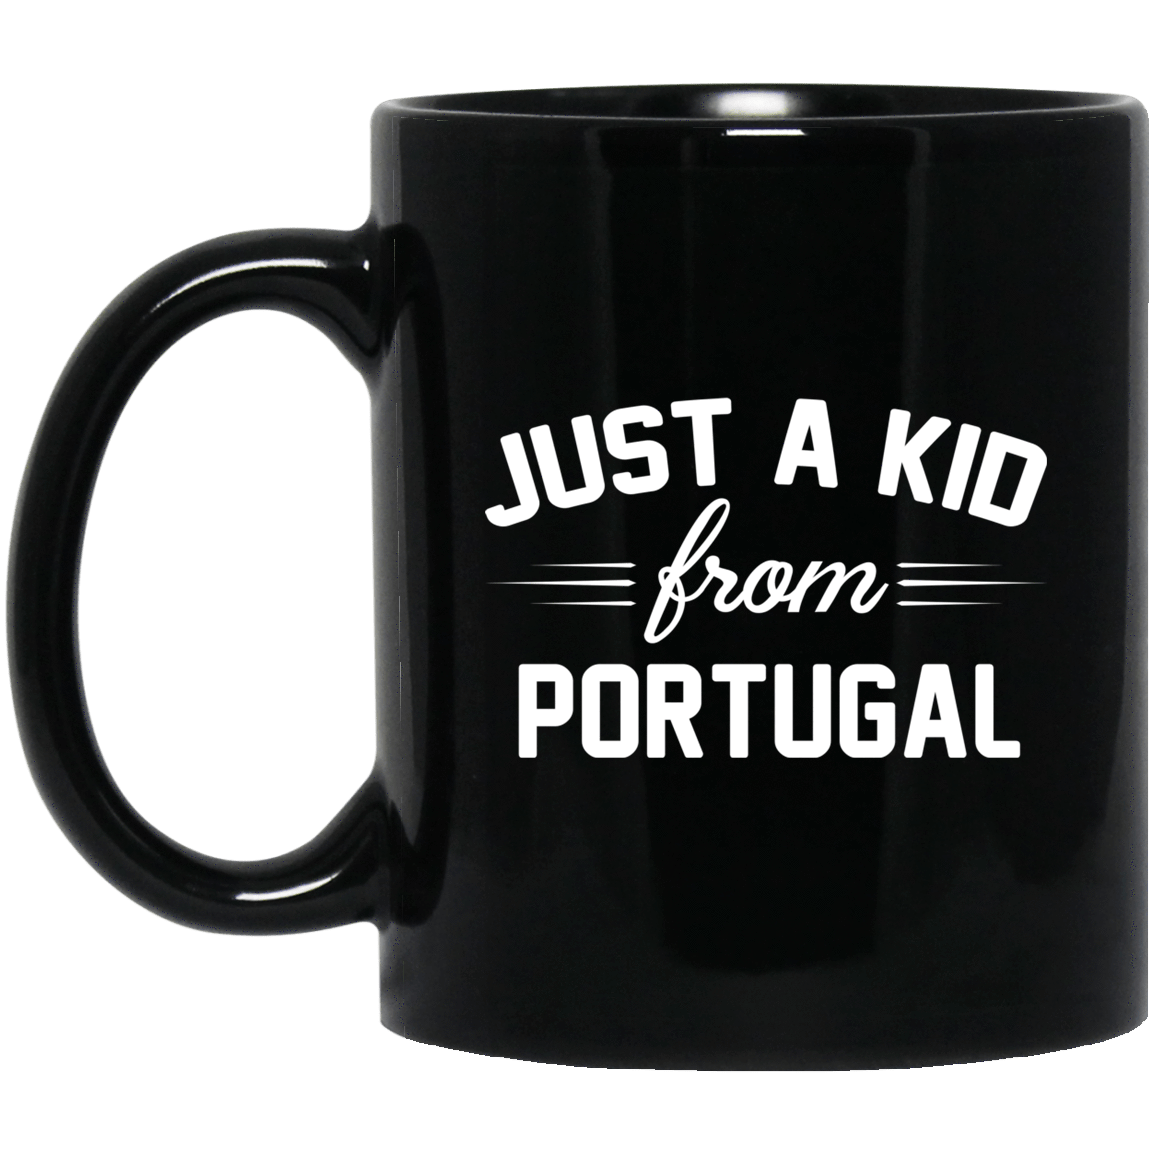 Just A Kid Store | Portugal Mug 1065-10181-72111115-49307 - Tee Ript